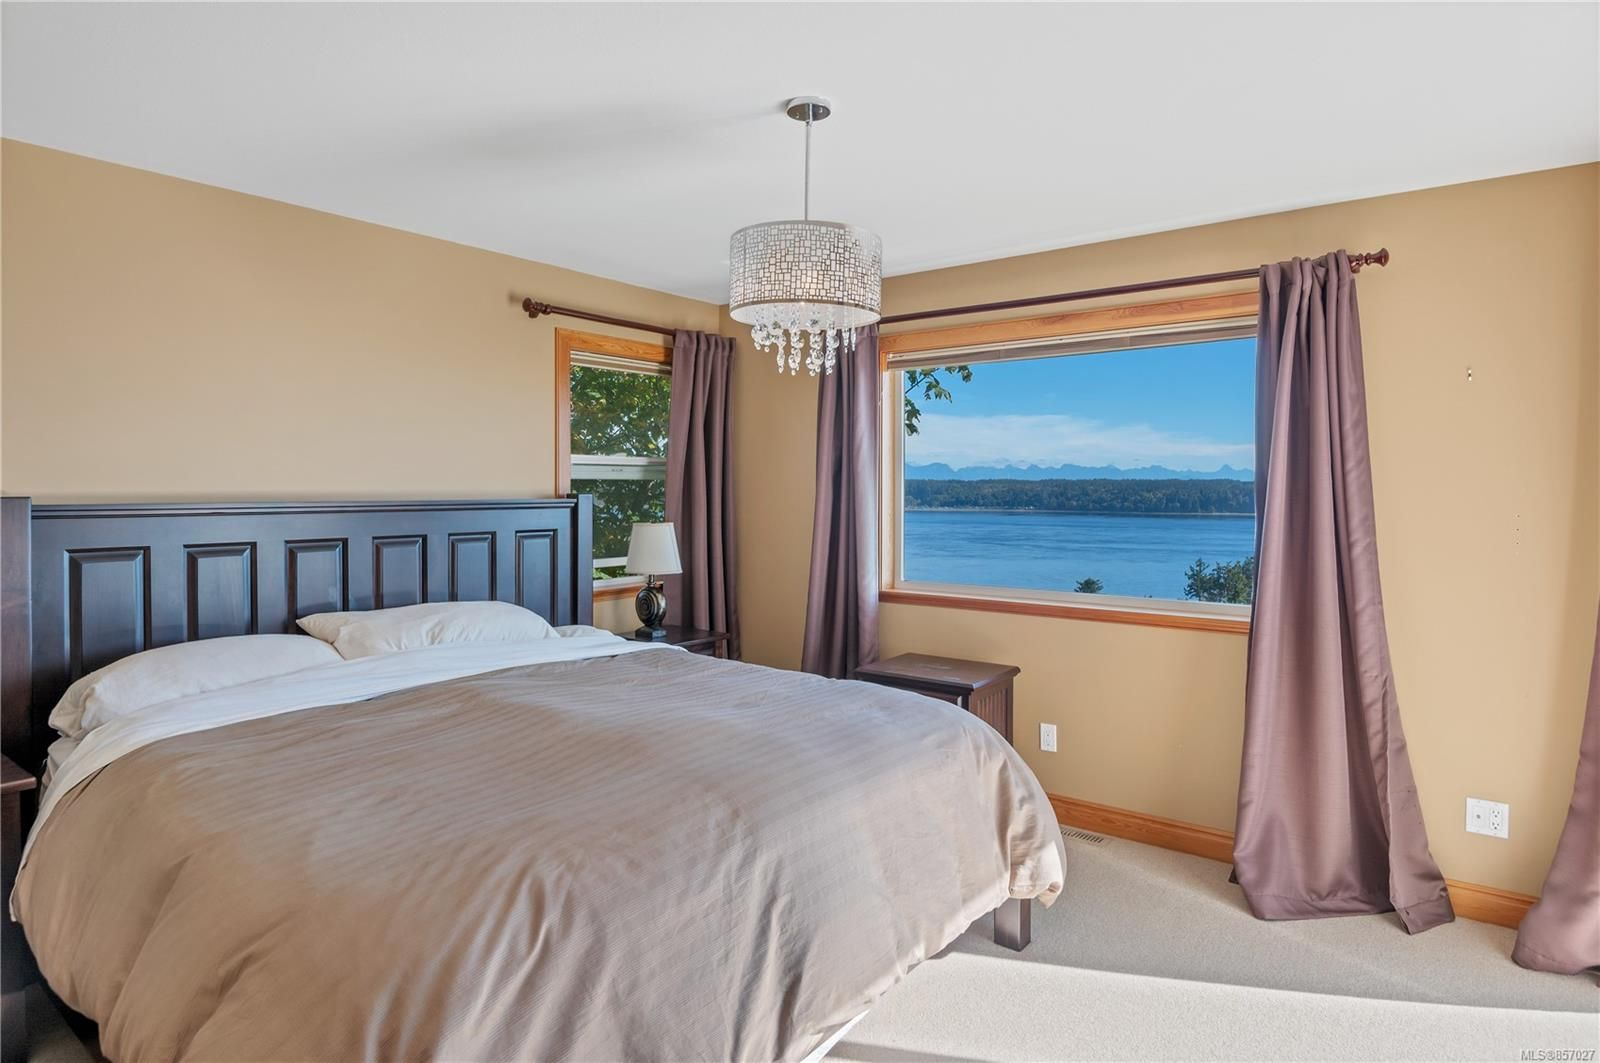 Photo 34: Photos: 253 S Alder St in : CR Campbell River South House for sale (Campbell River)  : MLS®# 857027